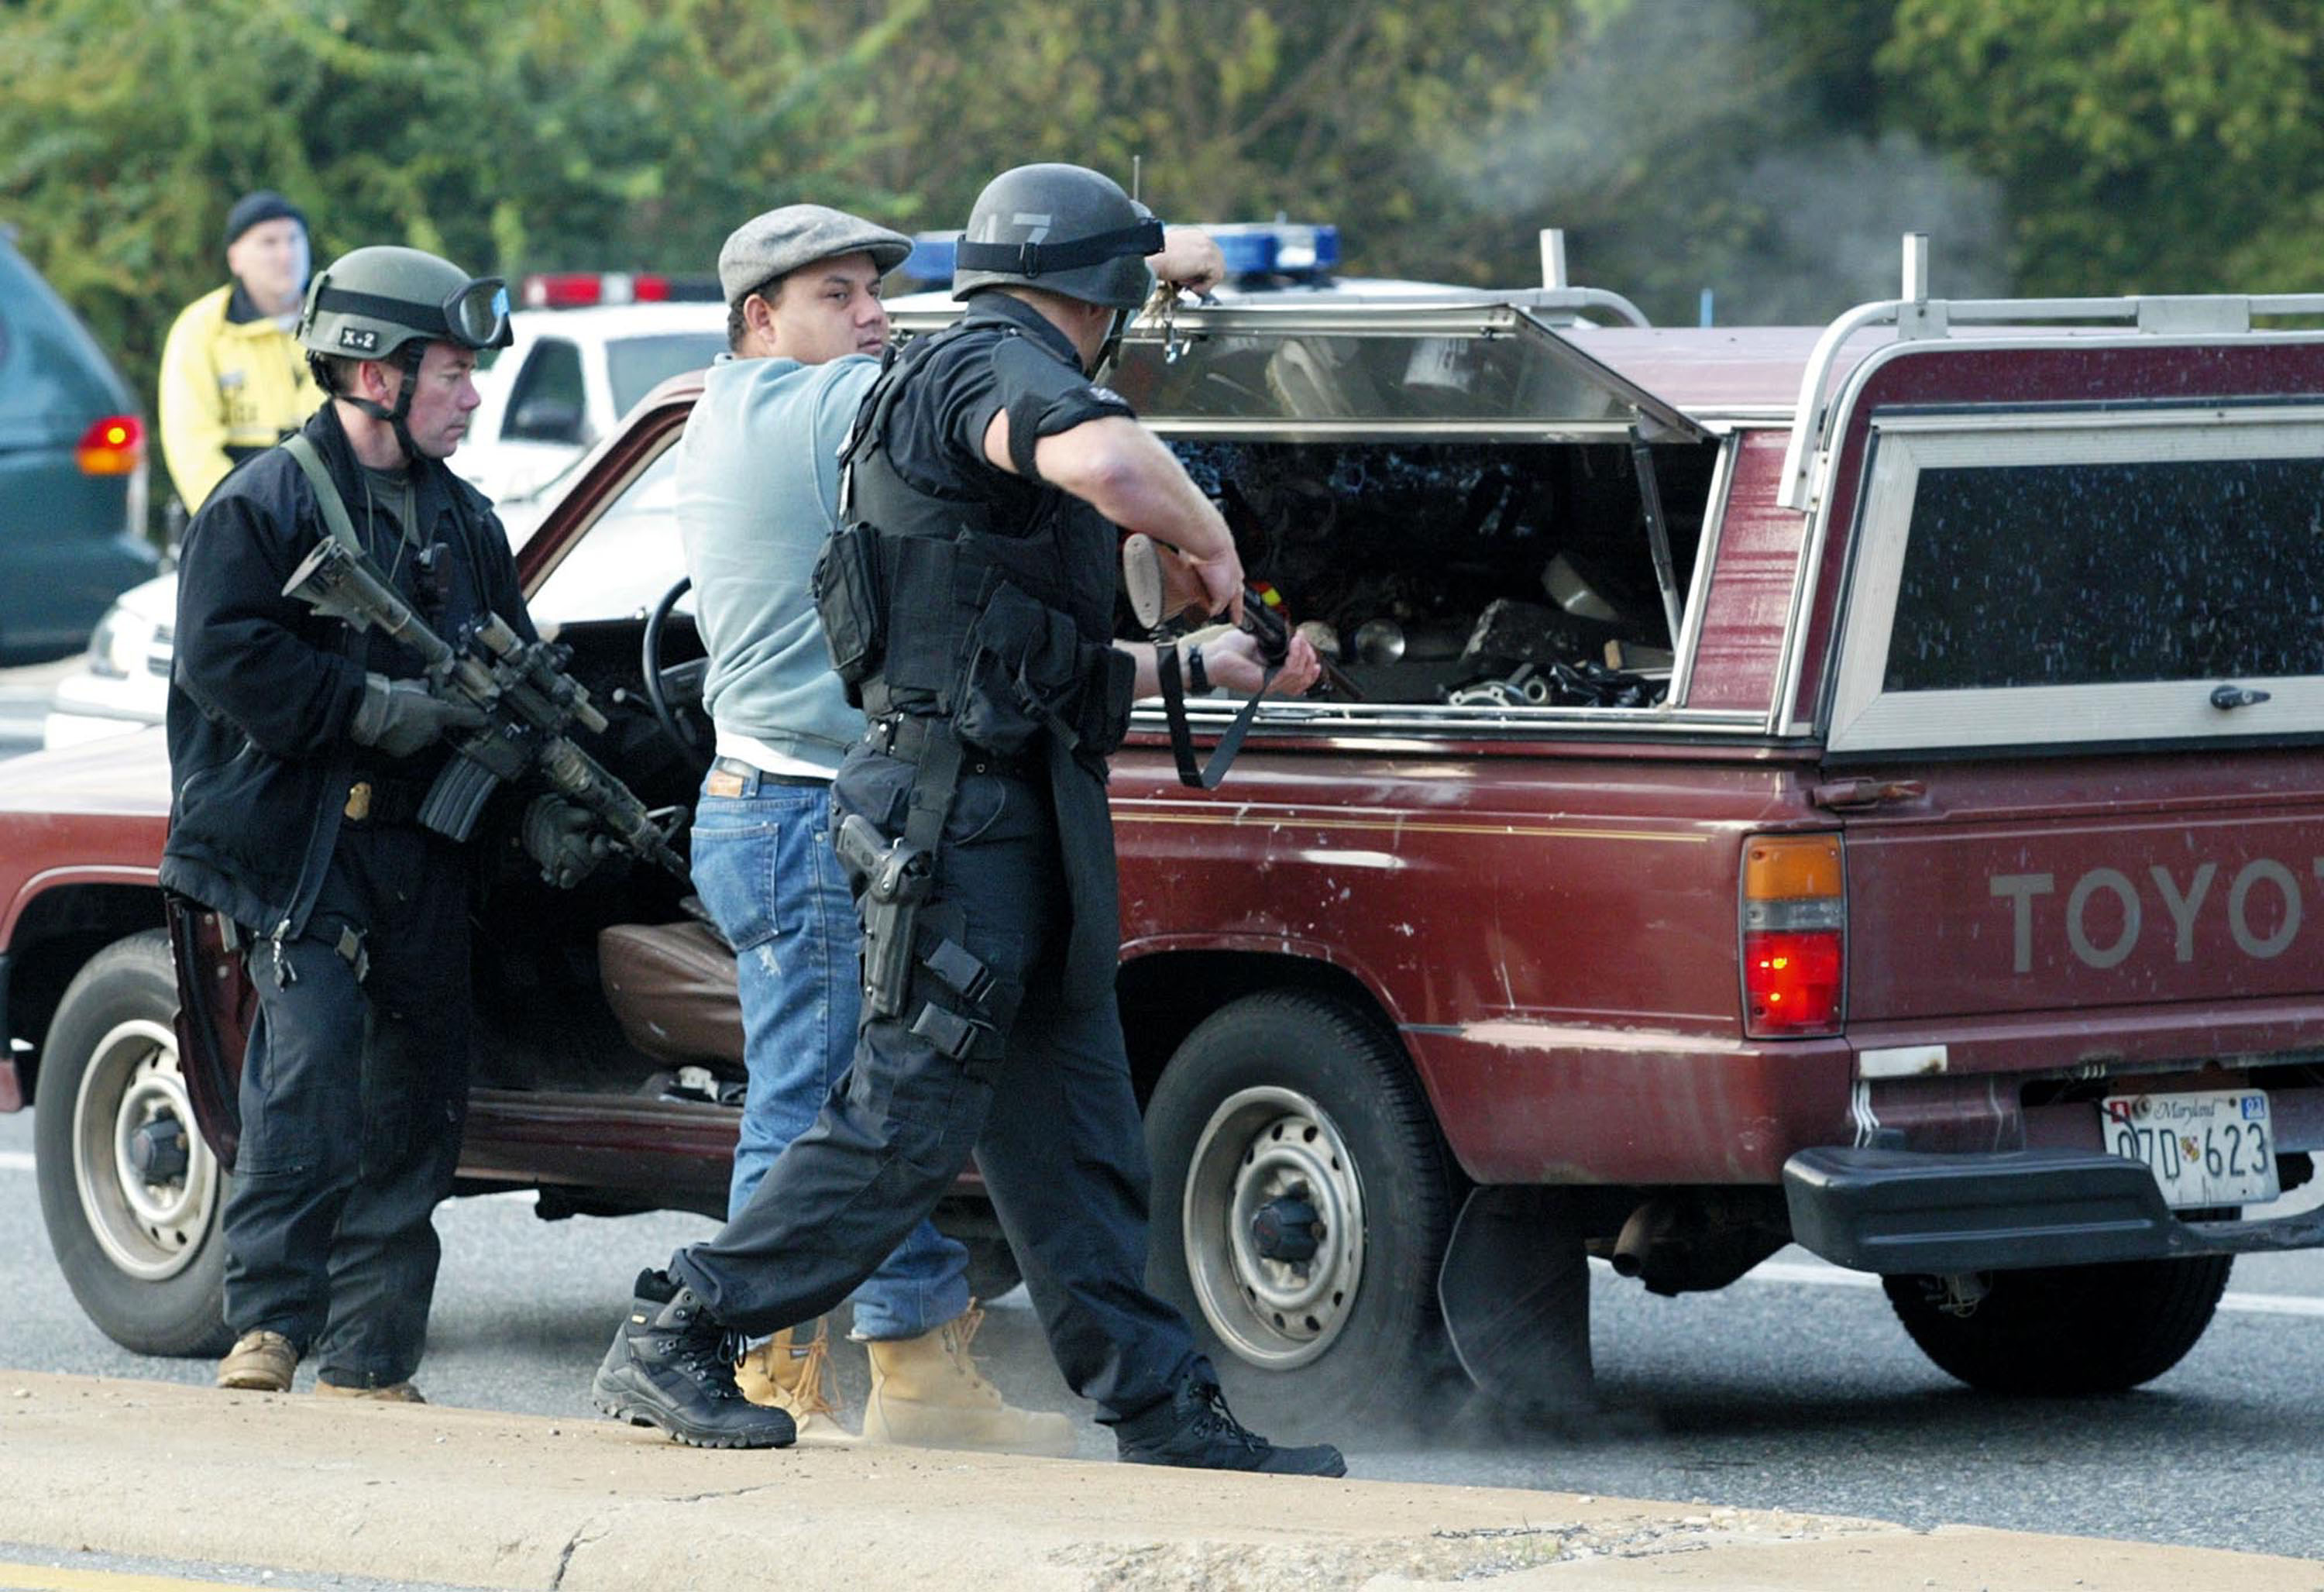 Police search a pickup truck about one mile south from the scene where the D.C. snipers shot a bus driver in Aspen Hill, Maryland on October 22, 2002. (Alex Wong/Getty Images)